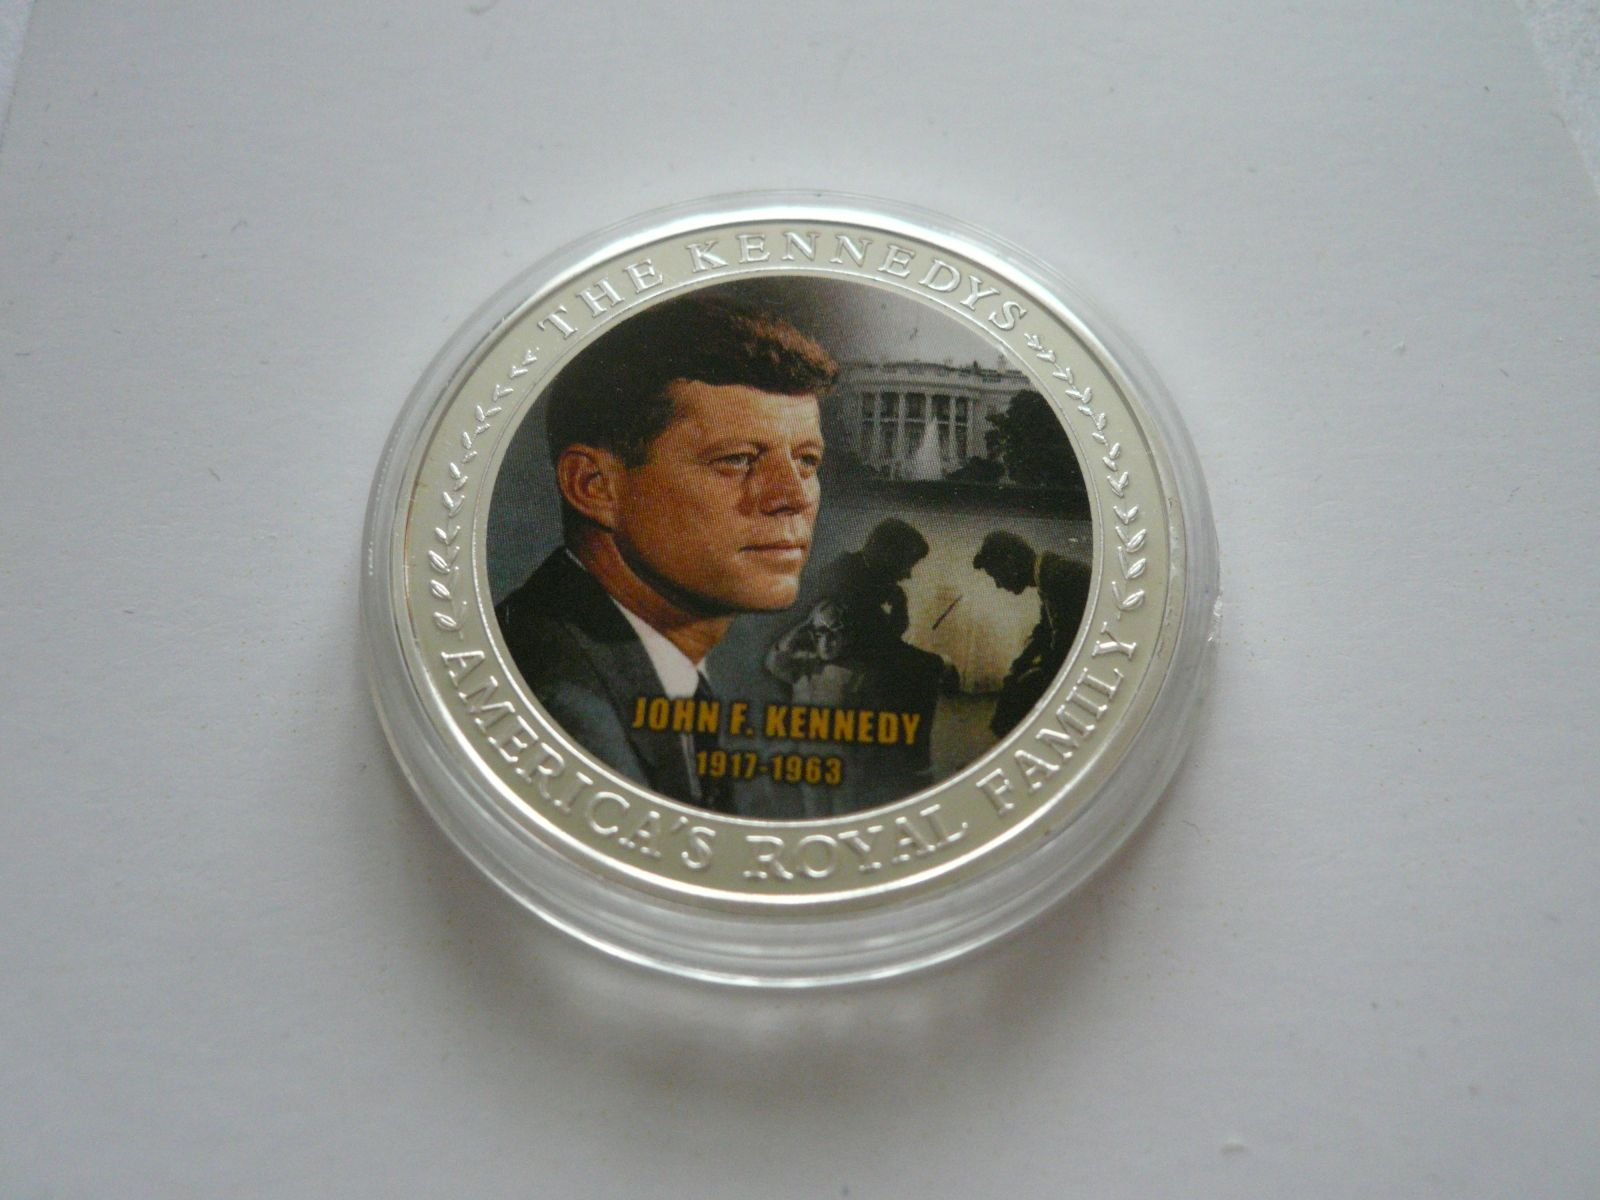 J.F.Kennedy, postříbřená ? 38mm, USA